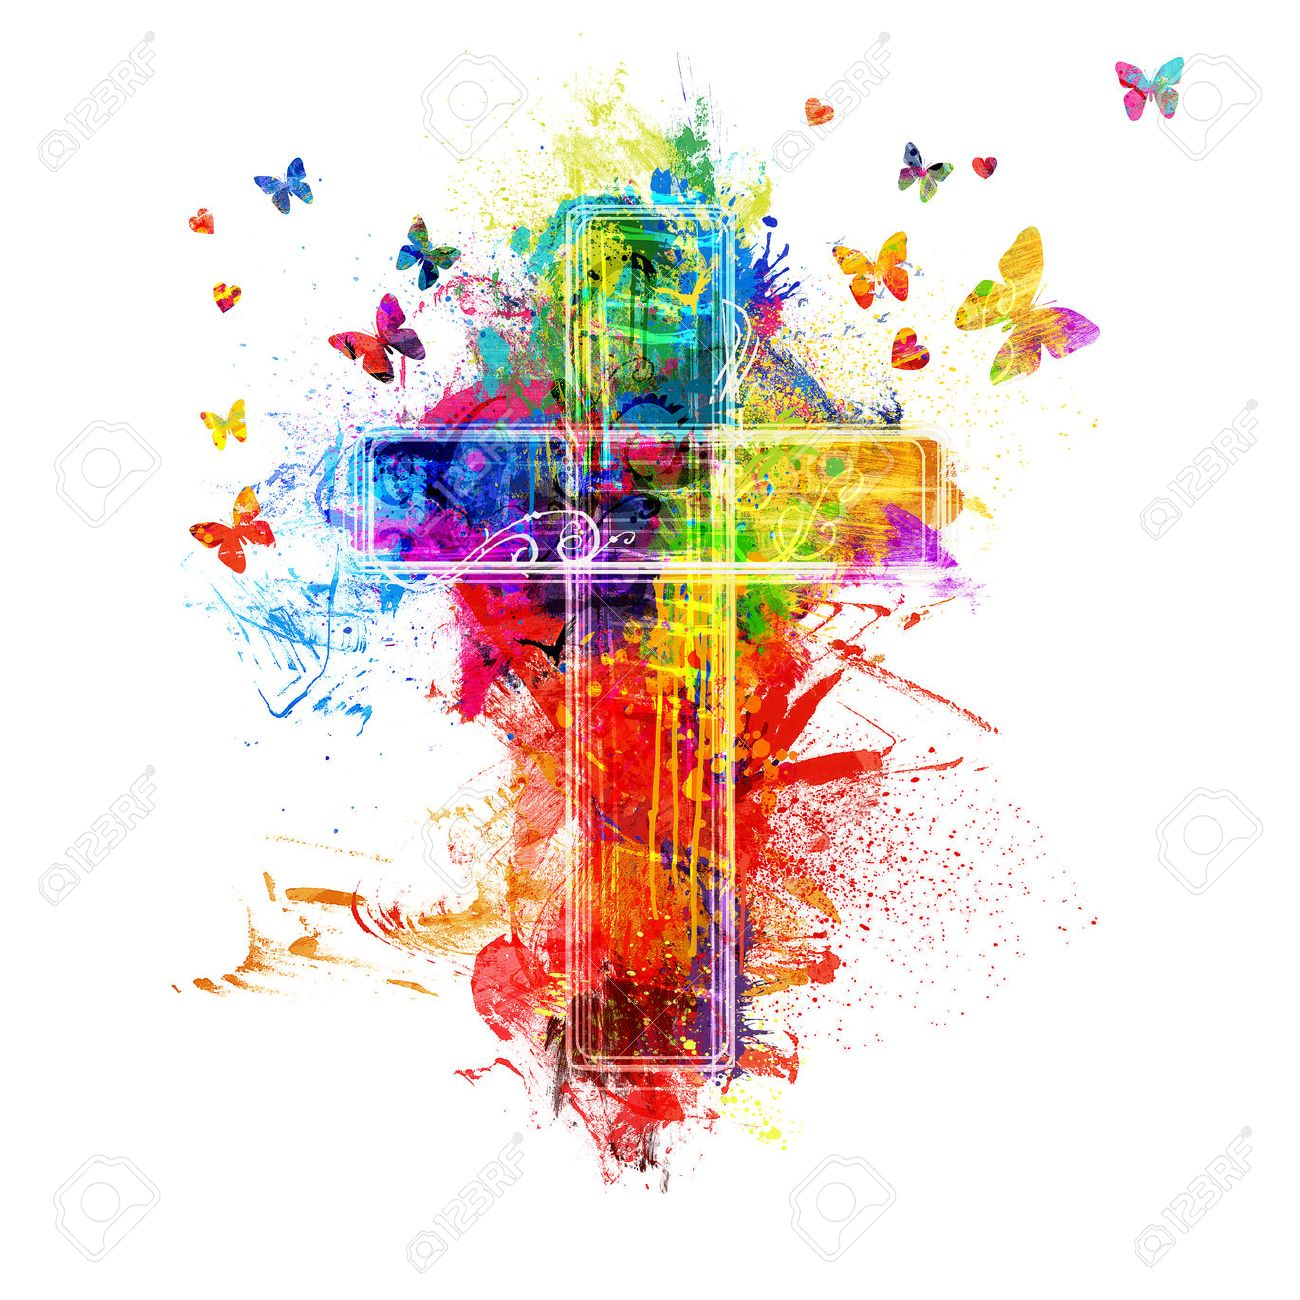 A cross created by colorful paint splatters - 57162417